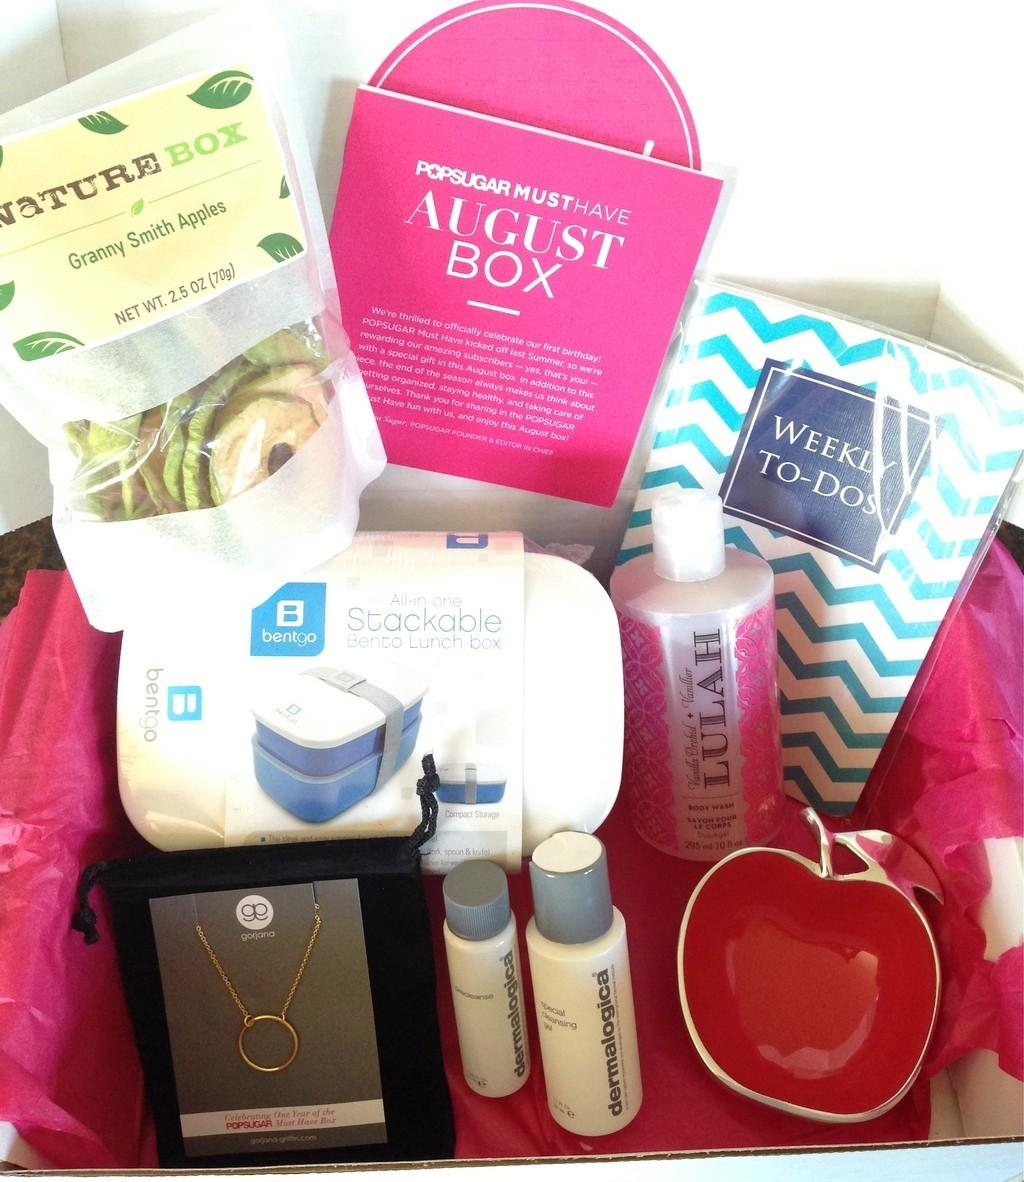 Is the POPSUGAR Must Have Box worth it? This is one of our all-time favorite boxes, but don't take our word for it: Read these reviews to see what's inside past boxes, get cost and shipping policies, and find out how other subscribers rate this box.